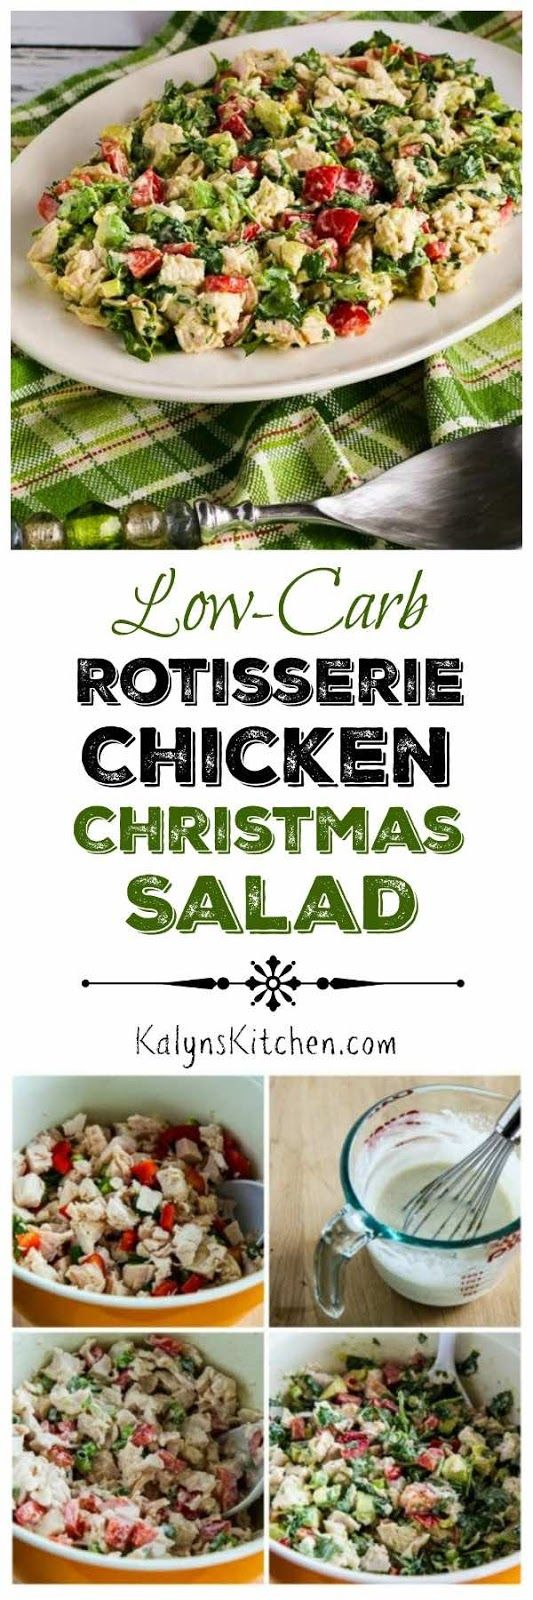 Low-Carb Rotisserie Chicken Christmas Salad Recipe with Avocado, Red Pepper, and Lime; this easy recipe is also gluten-free, dairy-free, and can easily be Paleo if you use approved mayo. And it's a refreshing change when you've had enough holiday sweets!  [KalynsKitchen.com]